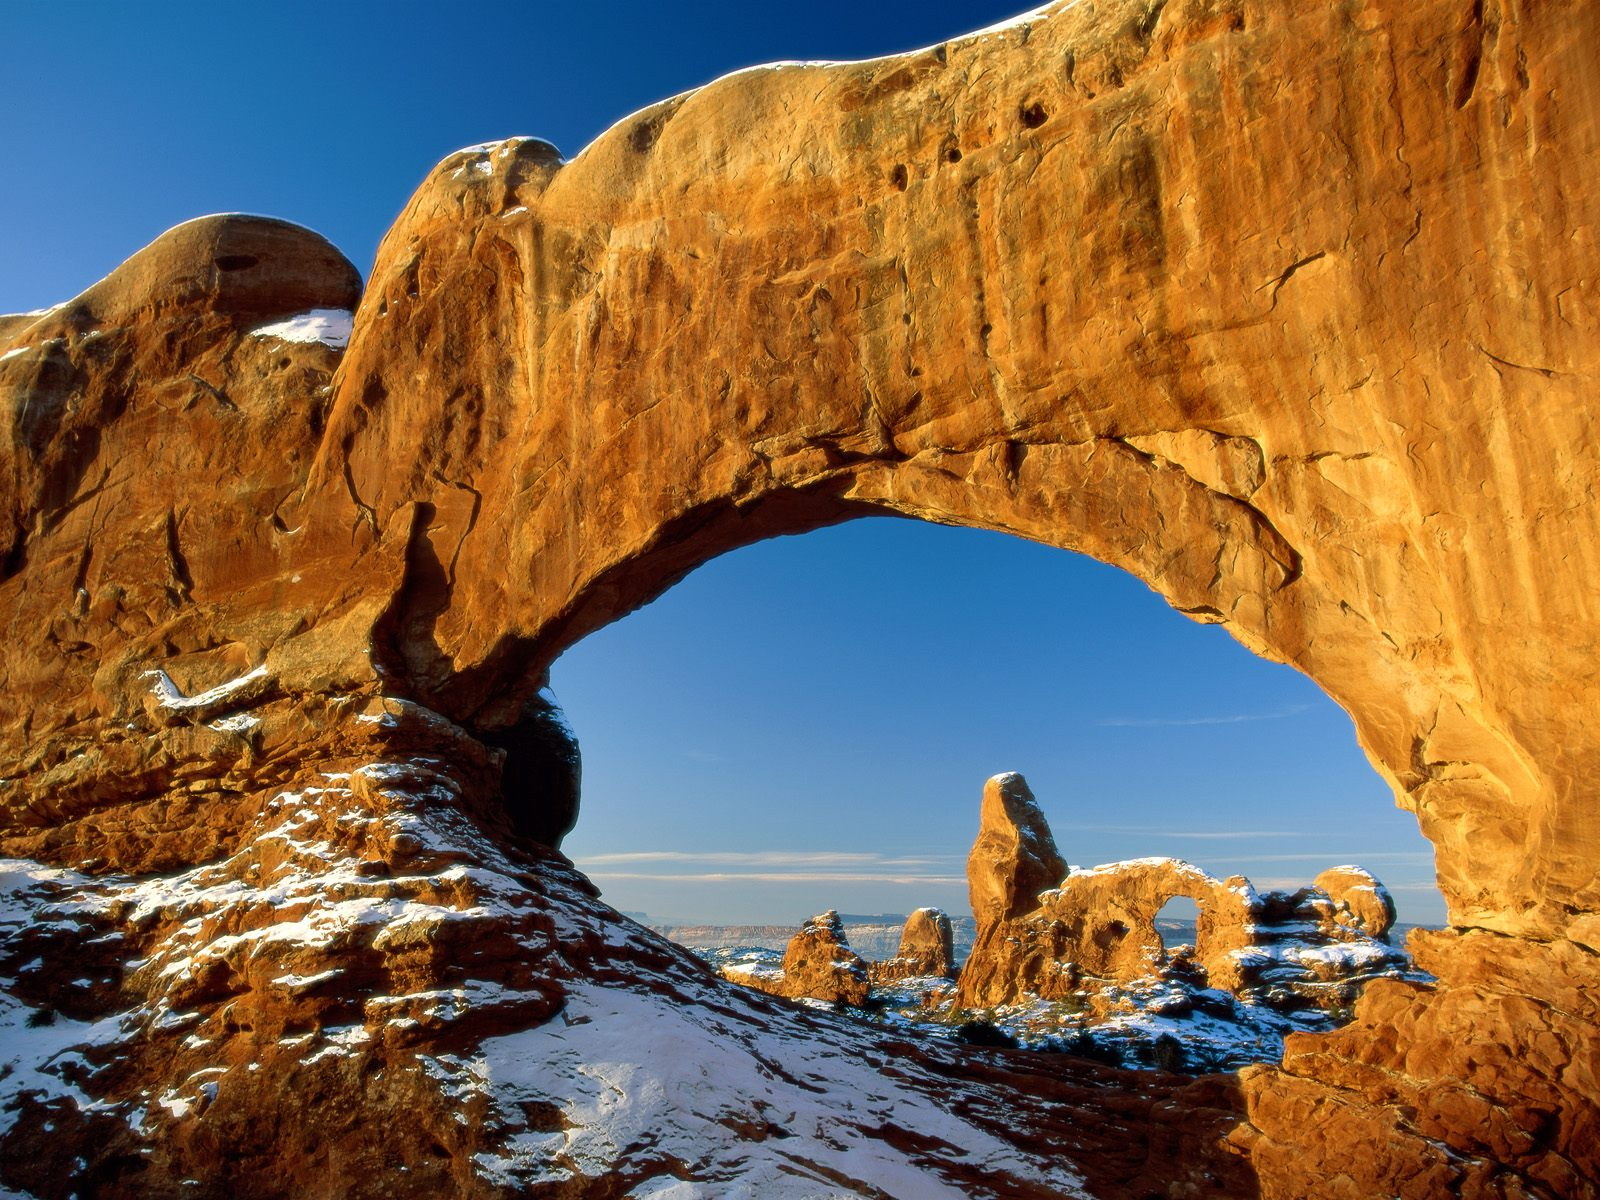 Arches National Park wallpapers Arches National Park stock photos 1600x1200